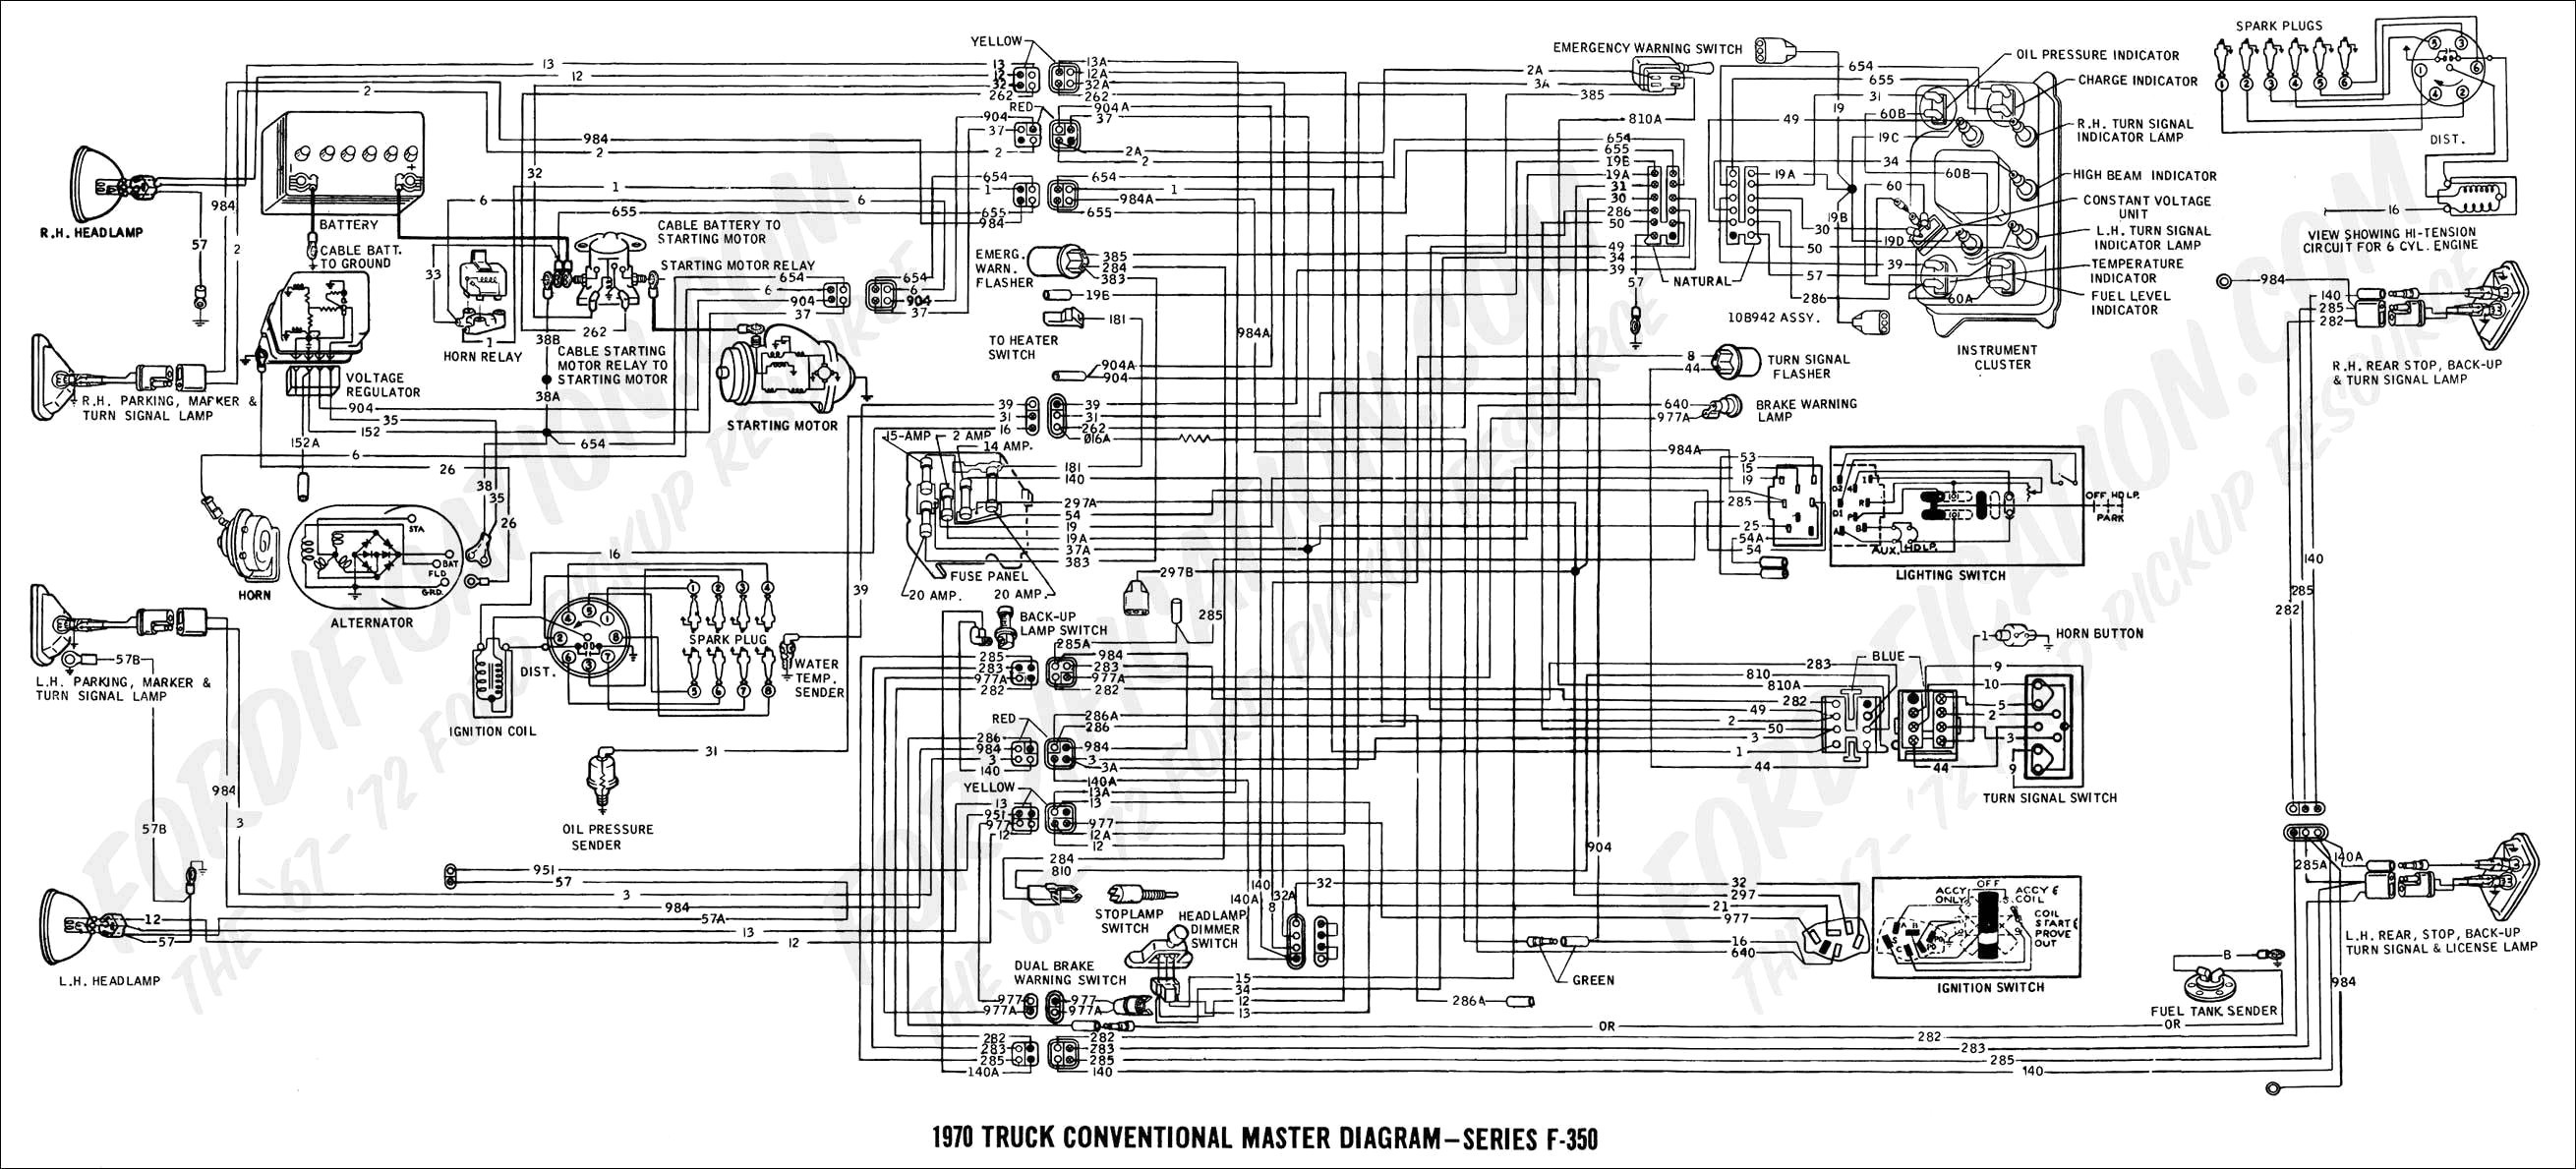 1995 toyota Tacoma Parts Diagram 1967 C10 Wiring Diagram Truck Parts Chevrolet Truck Endearing Of 1995 toyota Tacoma Parts Diagram